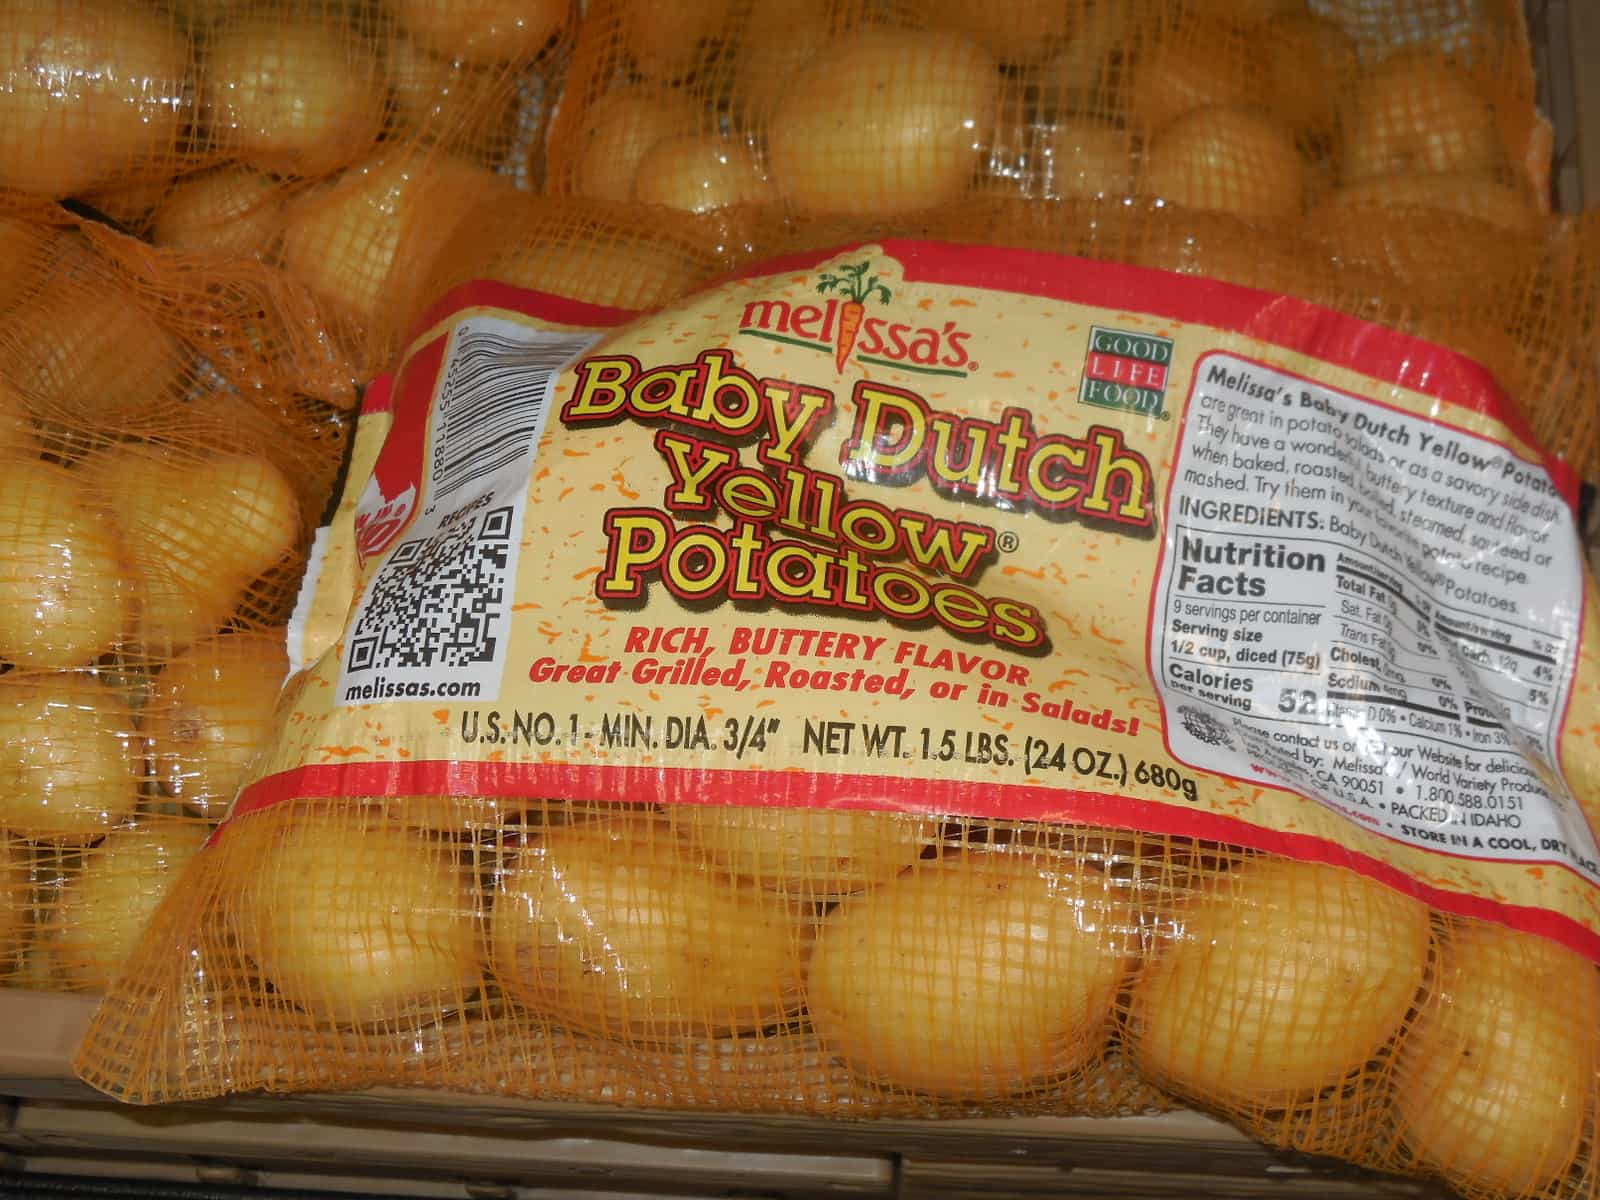 Yellow Potatoes Continue to Gain Market Share